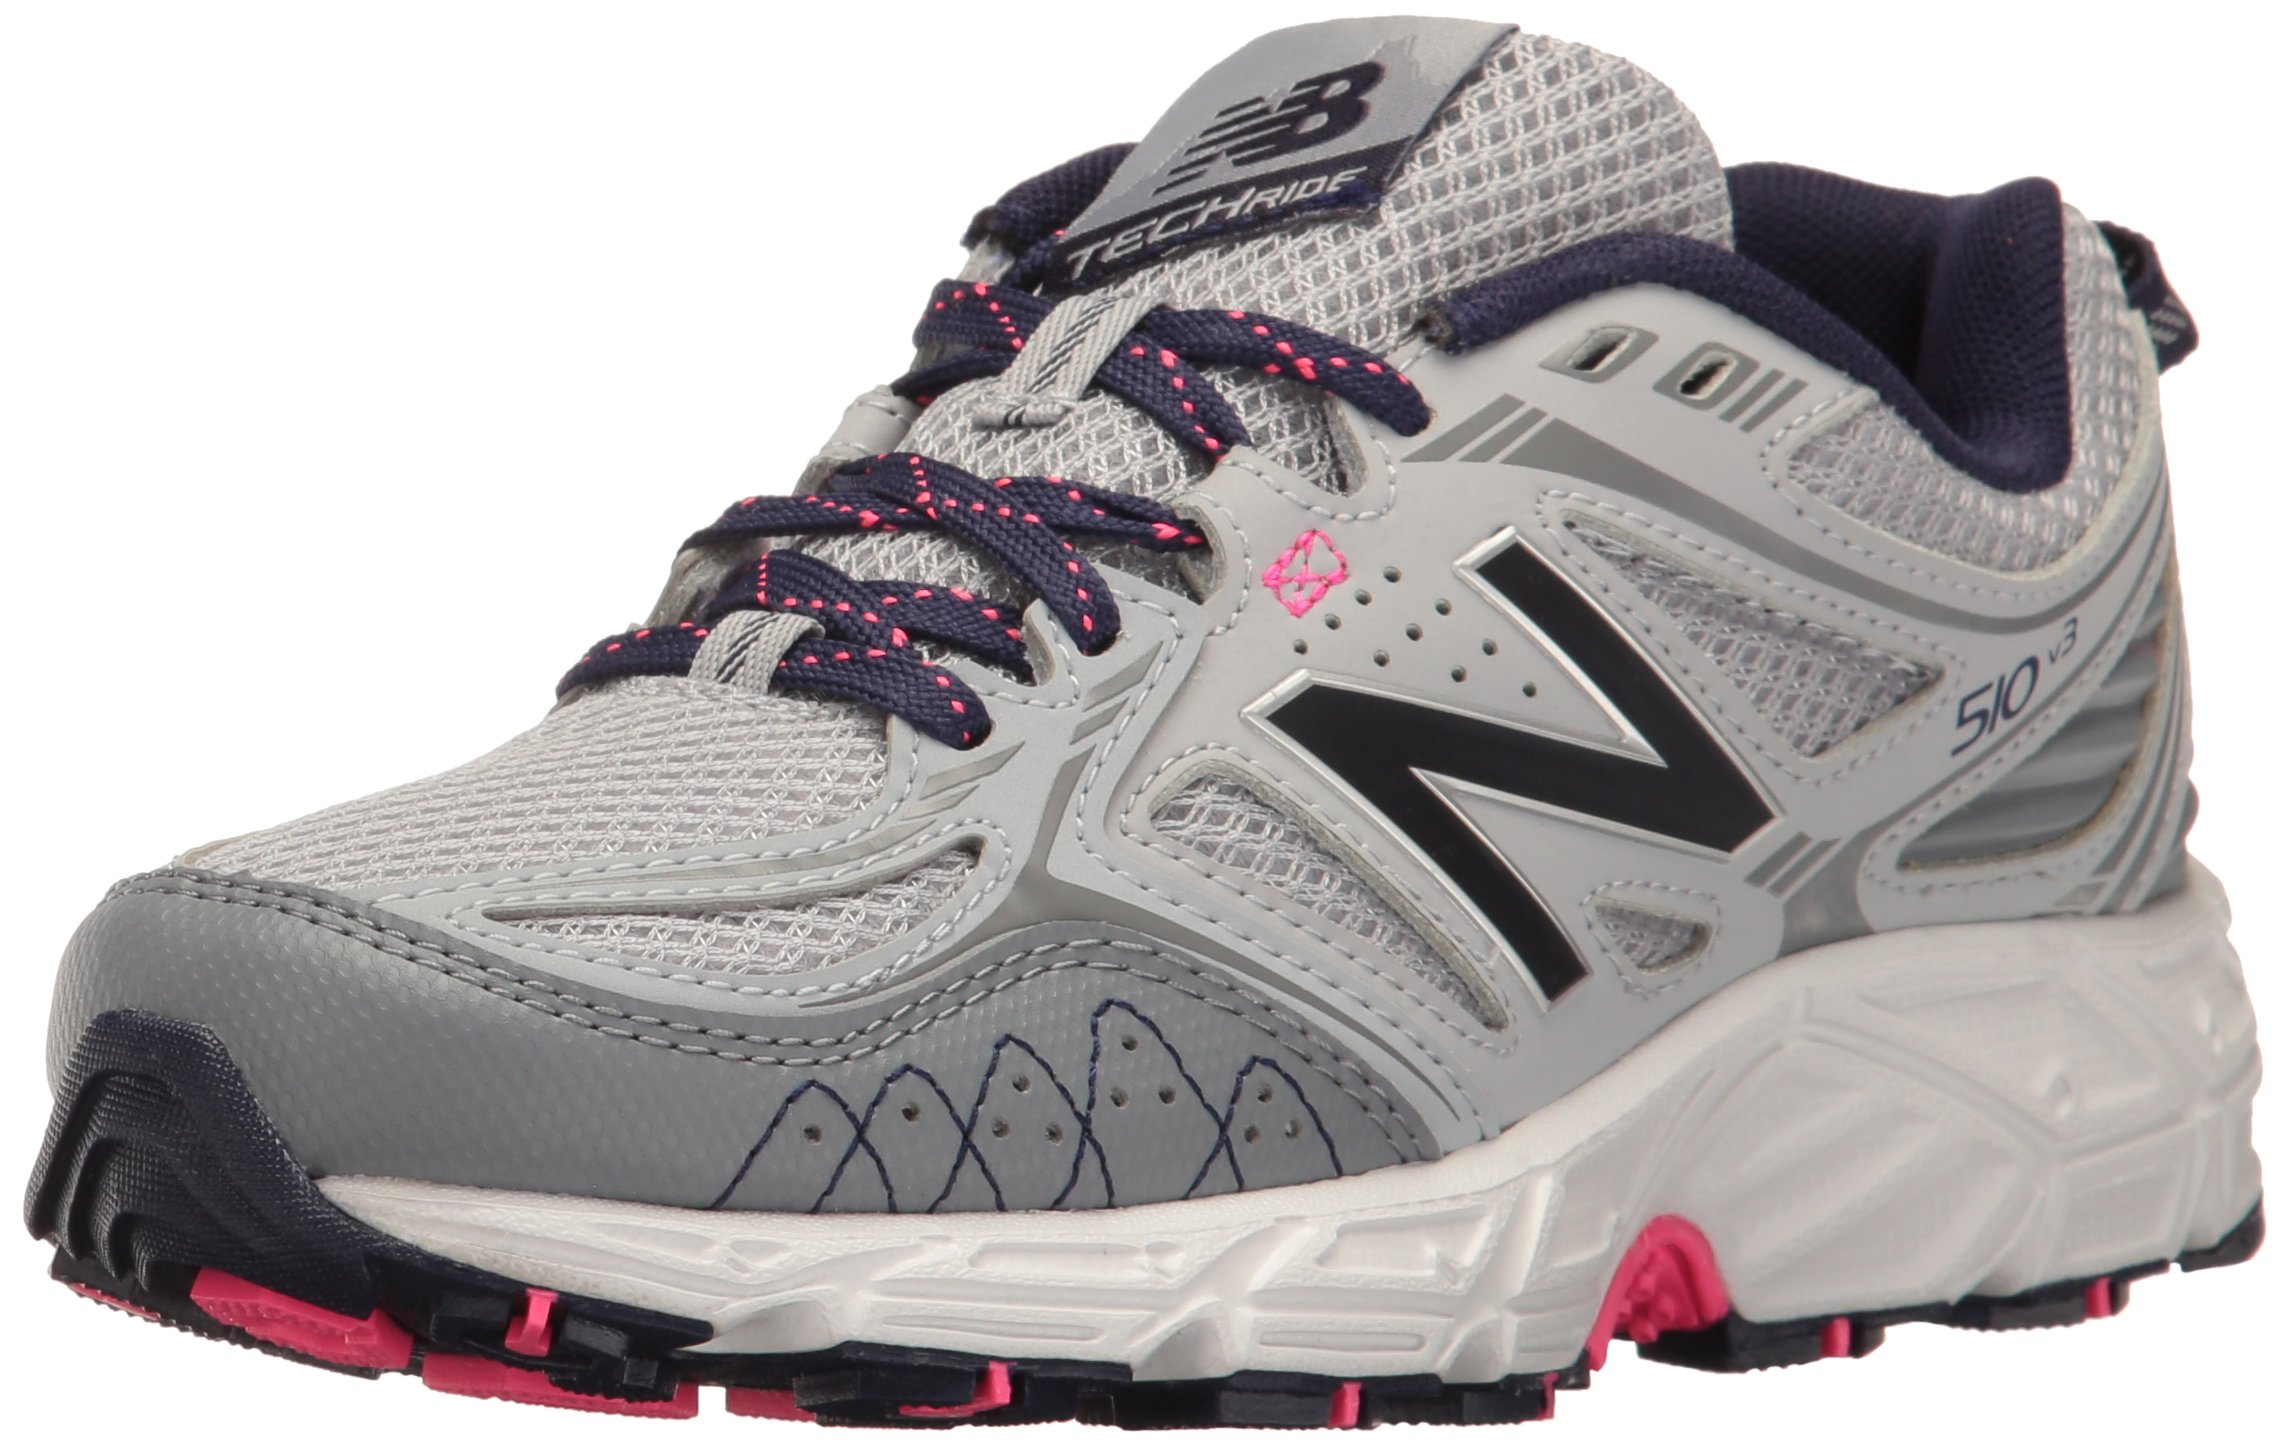 New Balance Women's Cushioning 510V3 Running Shoe Trail Runner, Silver Mink/Gunmetal, 8.5 B US